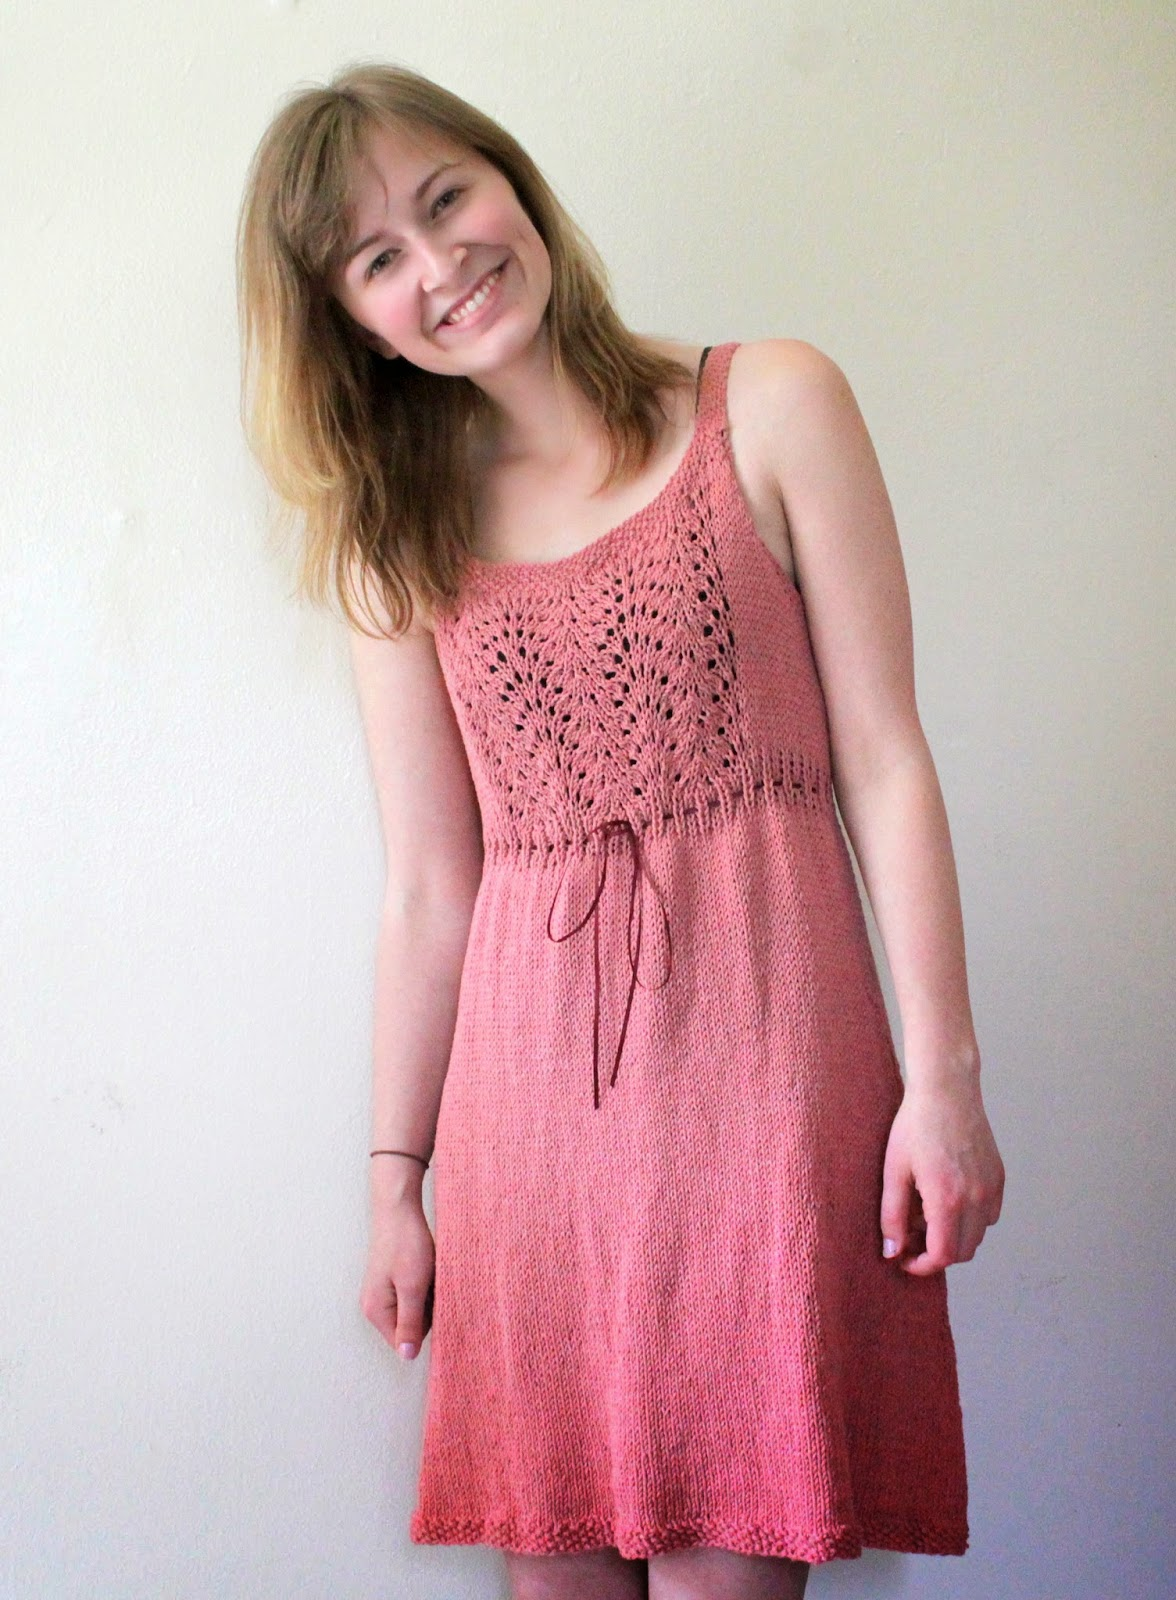 Knitting Summer Dress : The fuzzy square summer knit sun dress with lace